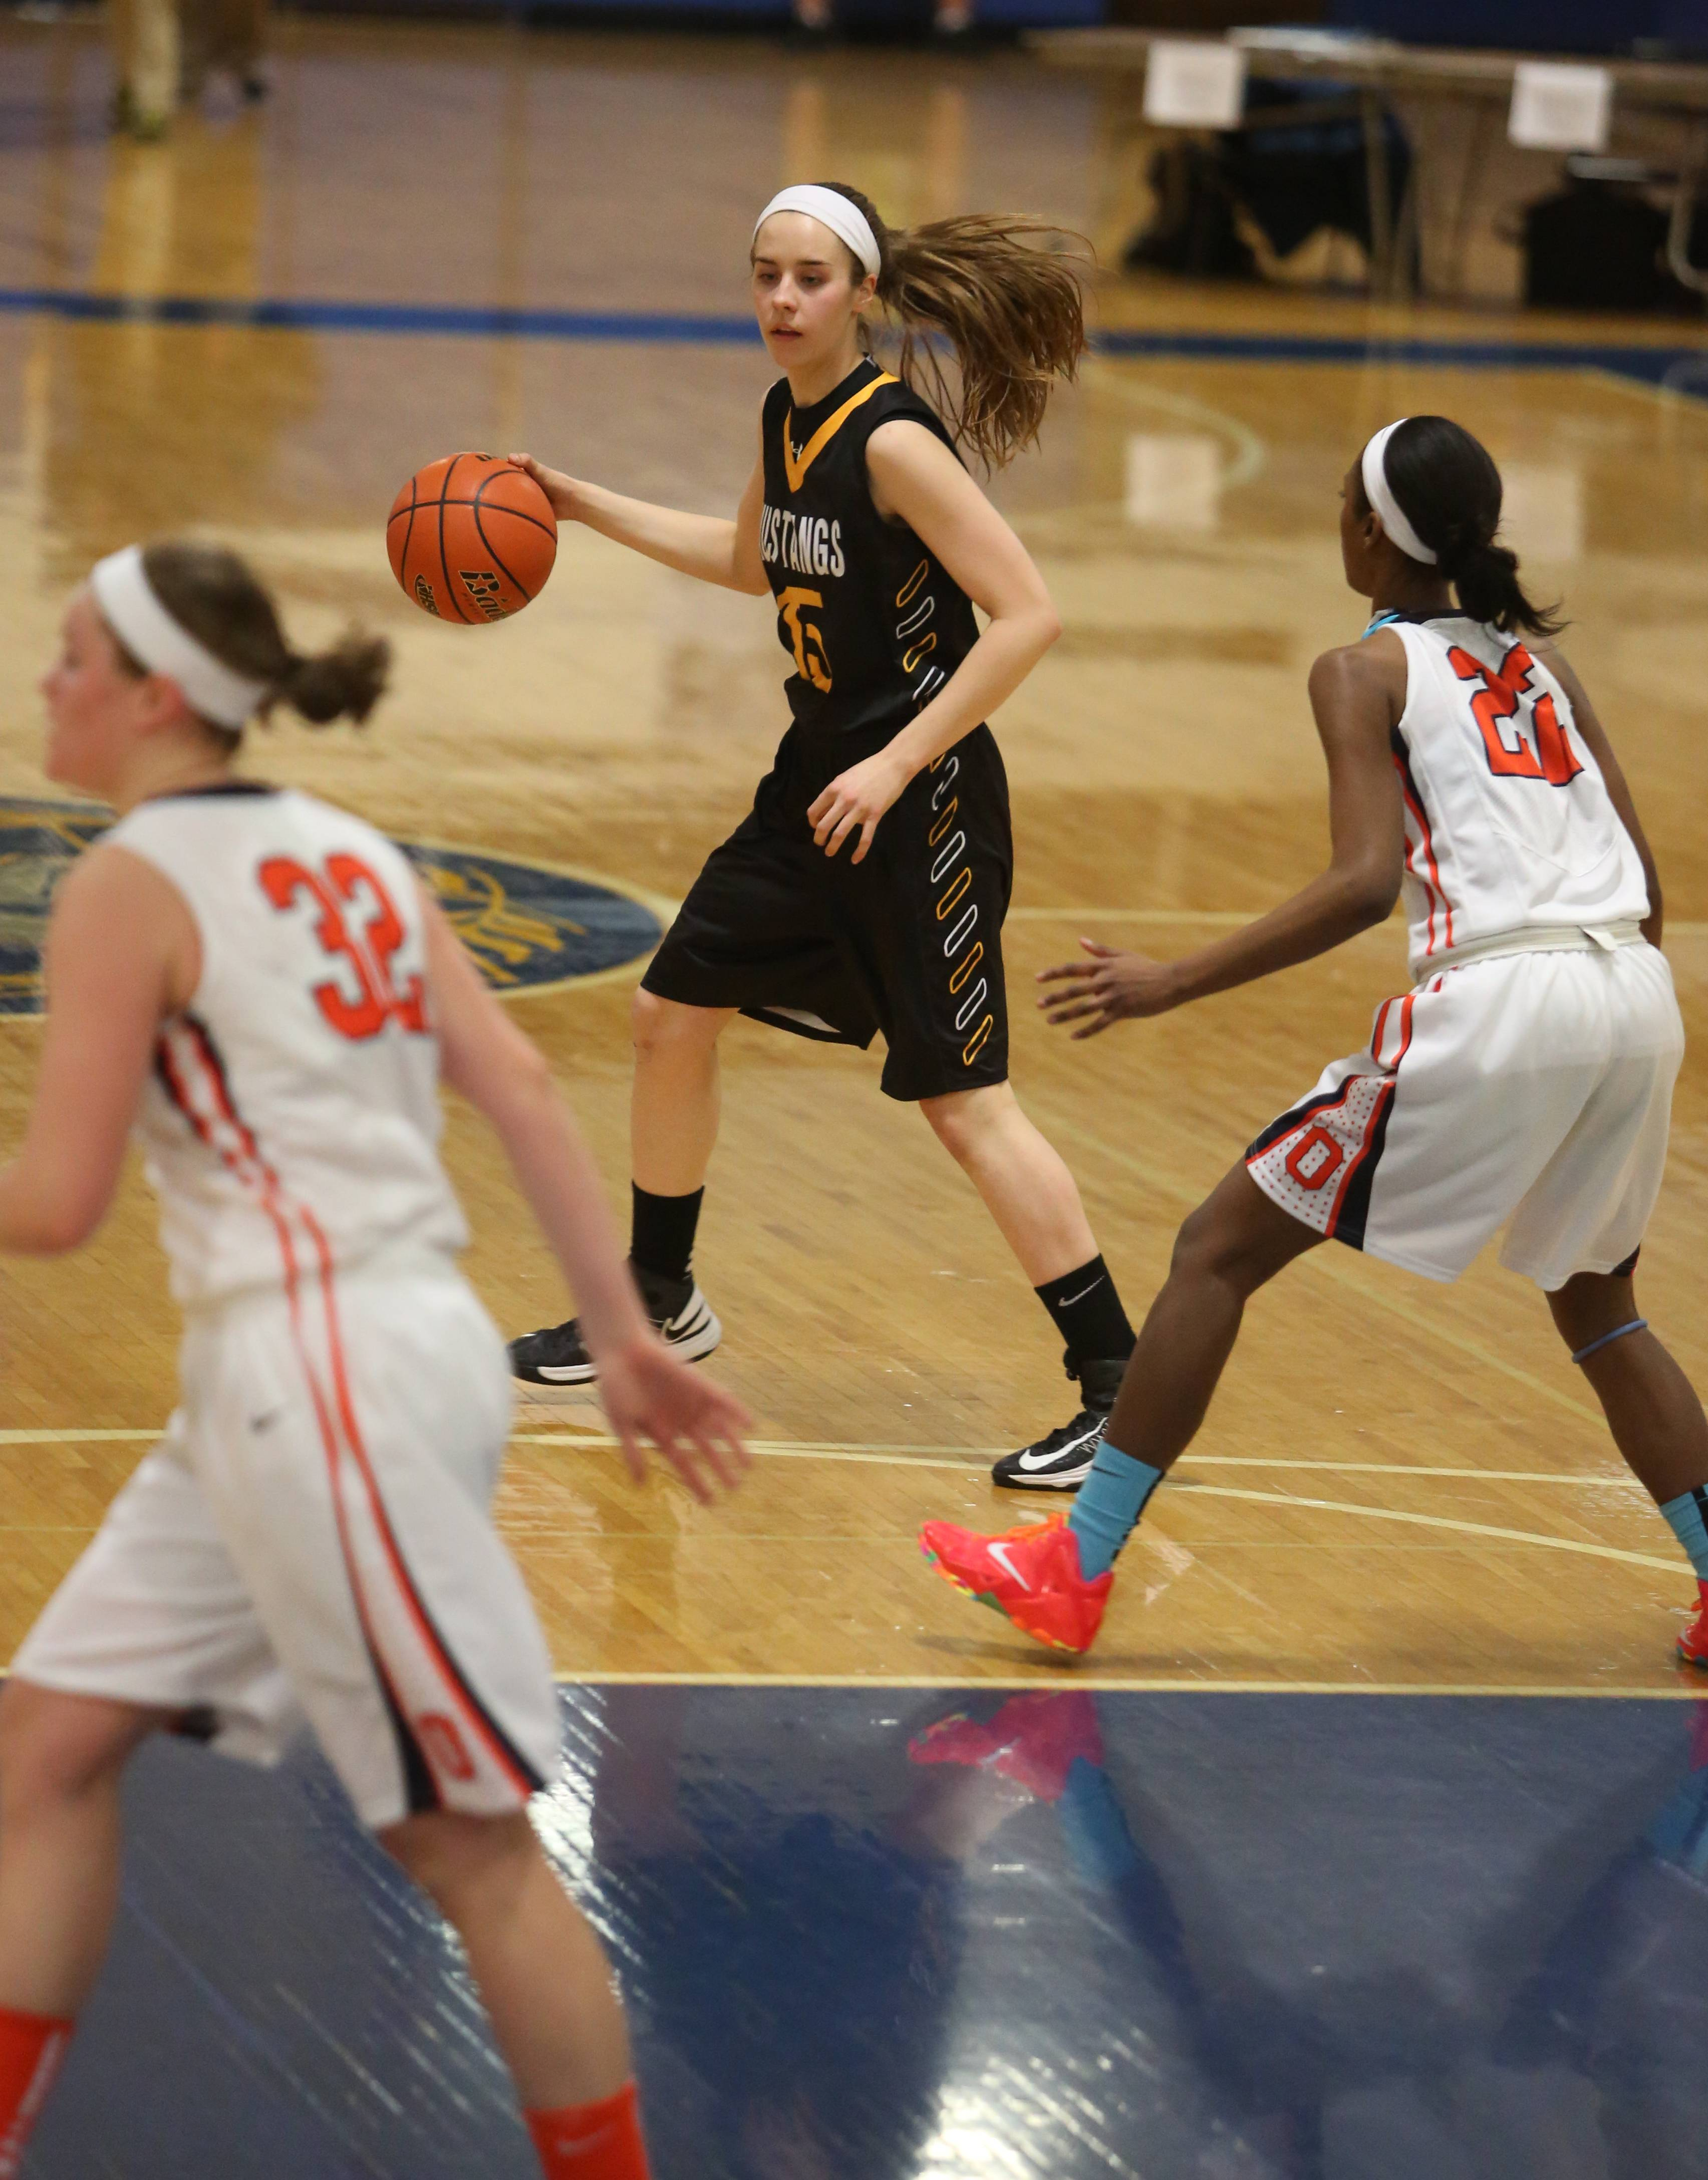 Photos from the Metea Valley vs. Oswego girls basketball at Joliet Central High School Monday, Feb. 24.